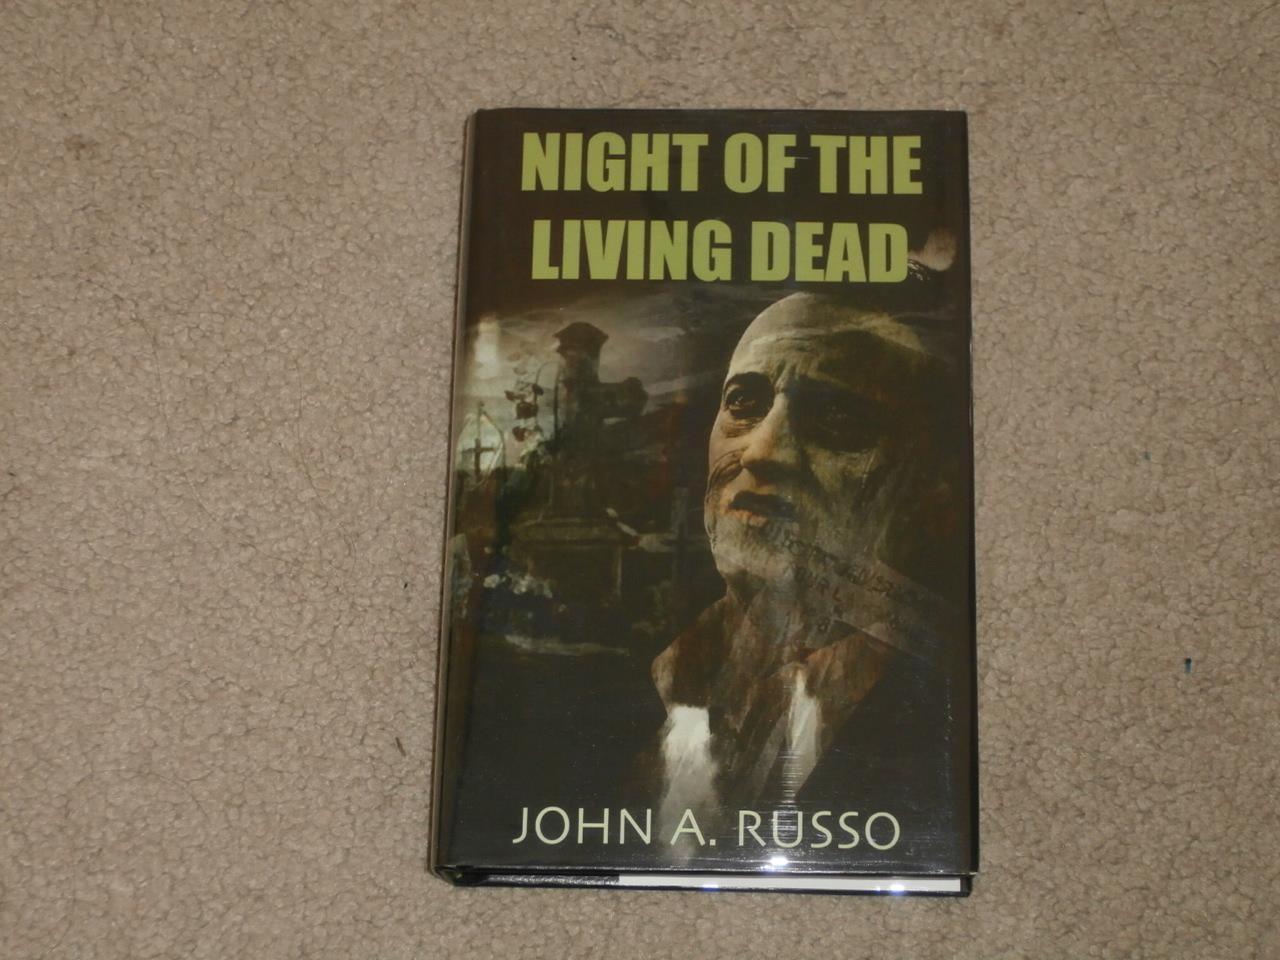 NIGHT OF THE LIVING DEAD: SIGNED LIMITED EDITION 88/500 INCLUDES UNPRODUCED SCREENPLAY SPAWN OF THE LIVING DEAD John A. Russo